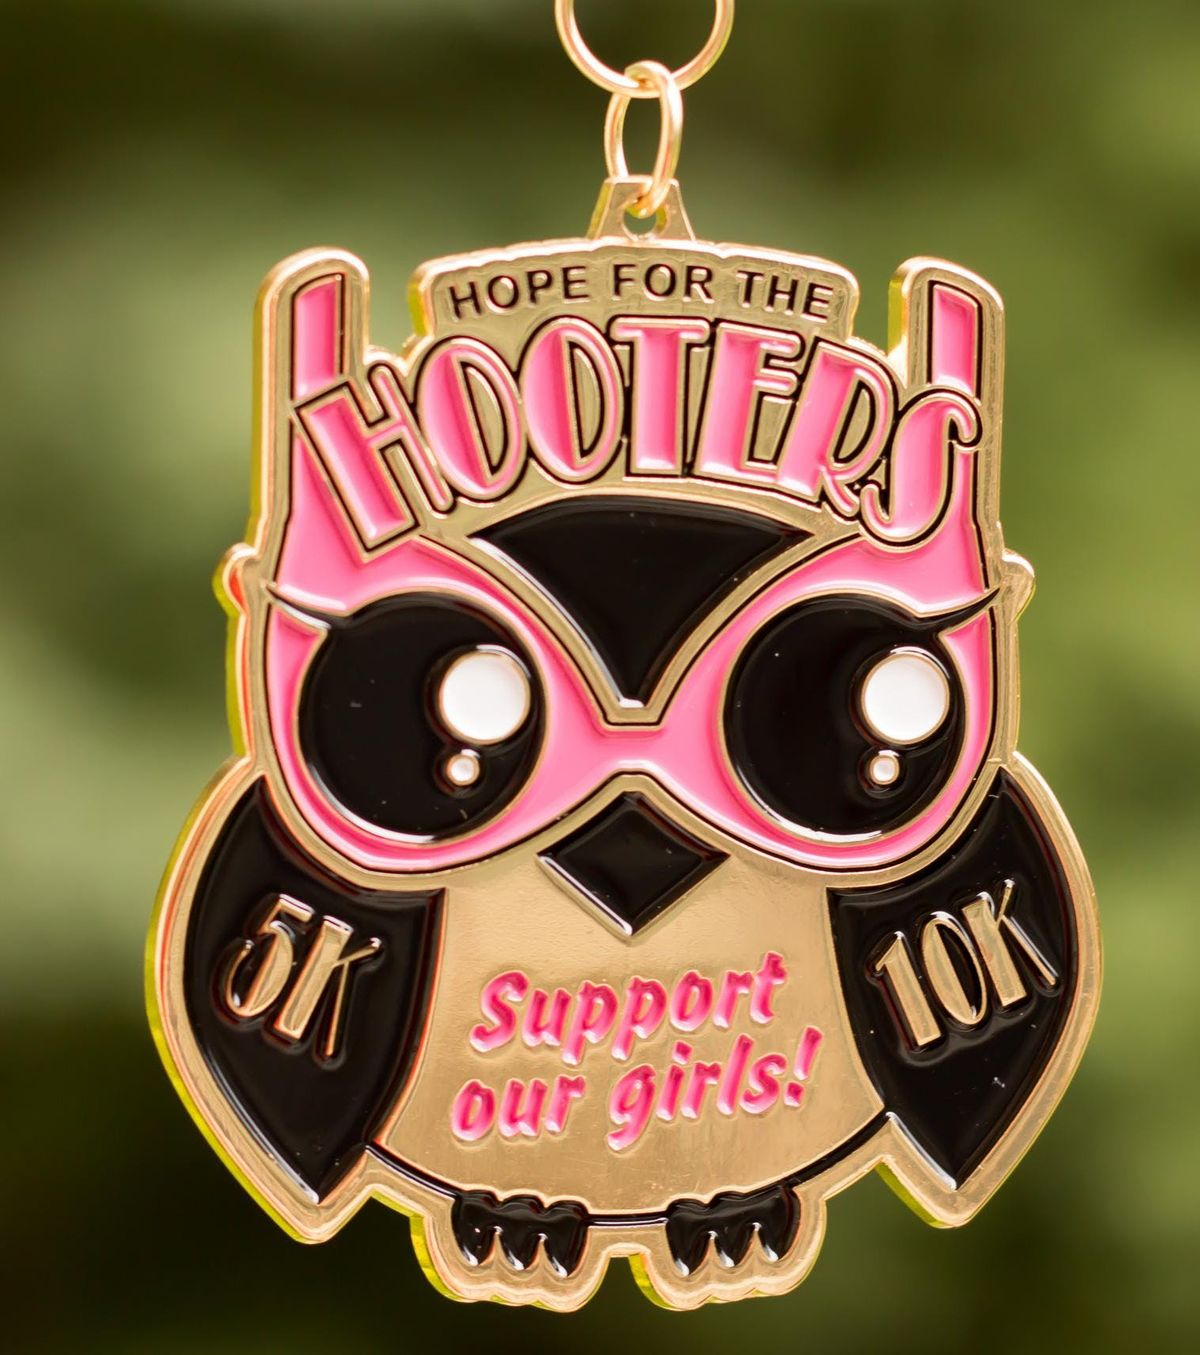 Now Only 10 Support Our Girls Hope for the Hooters 5K & 10K- Pittsburgh